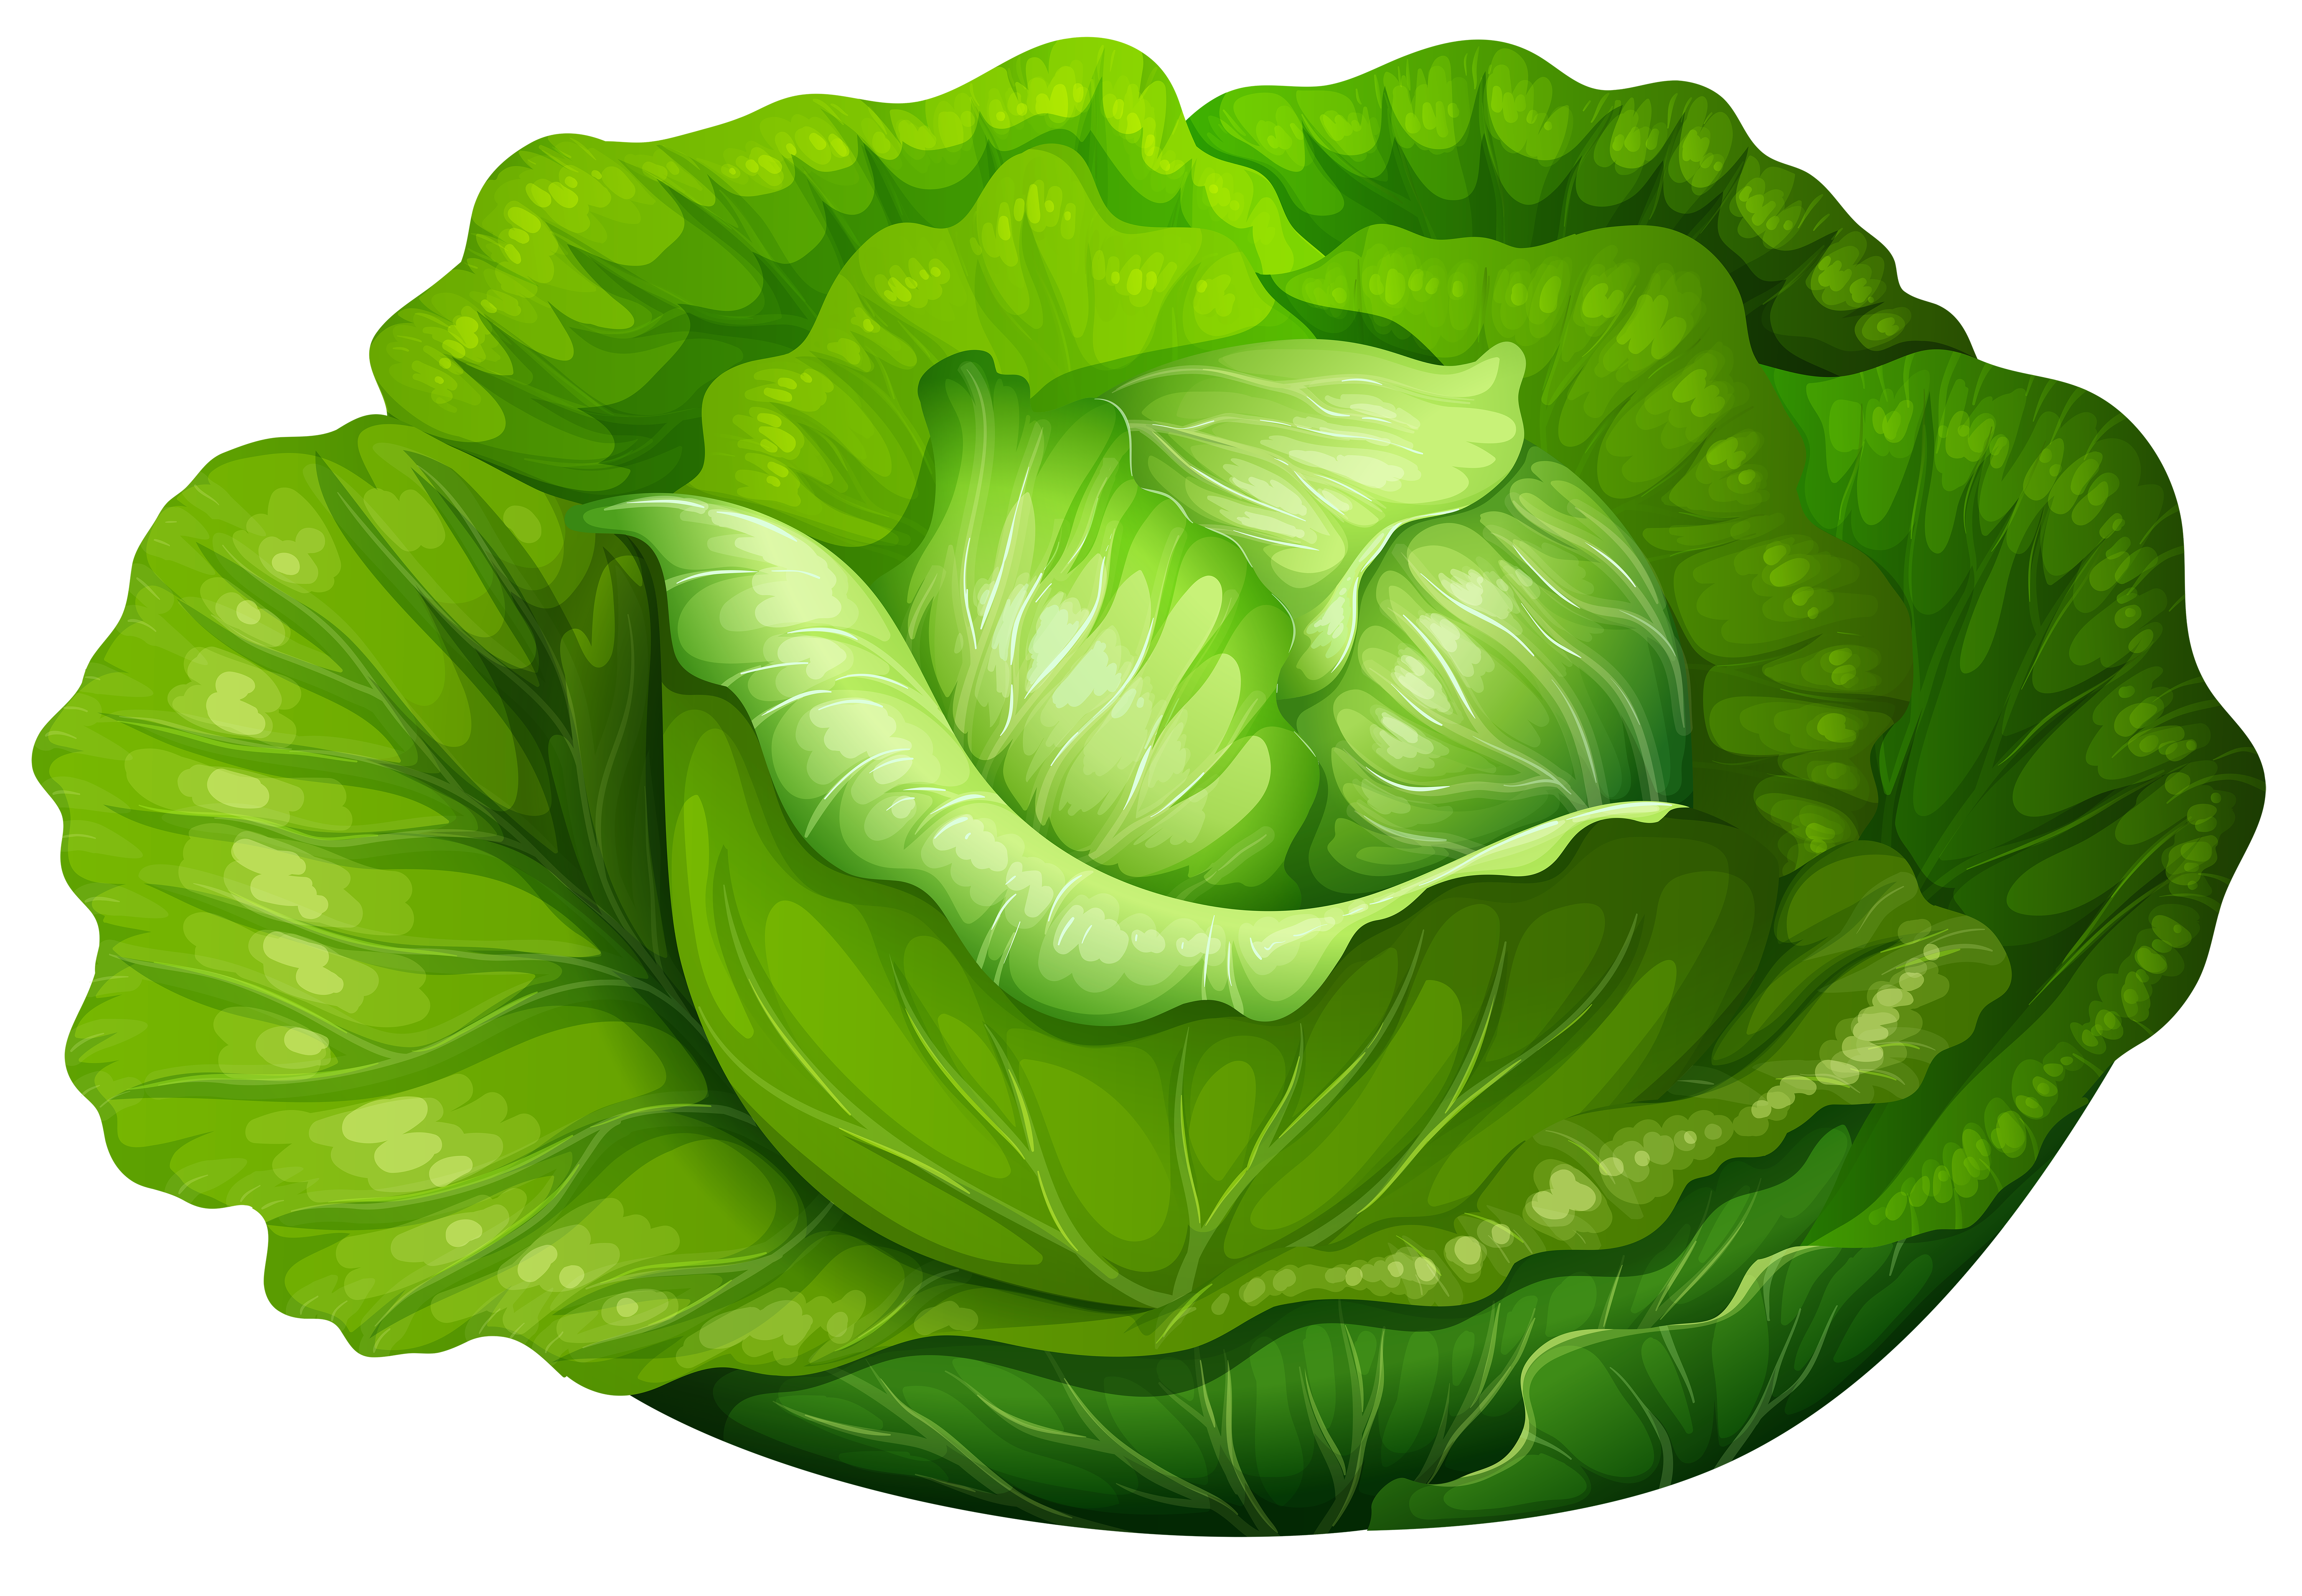 Clipart cabbage.